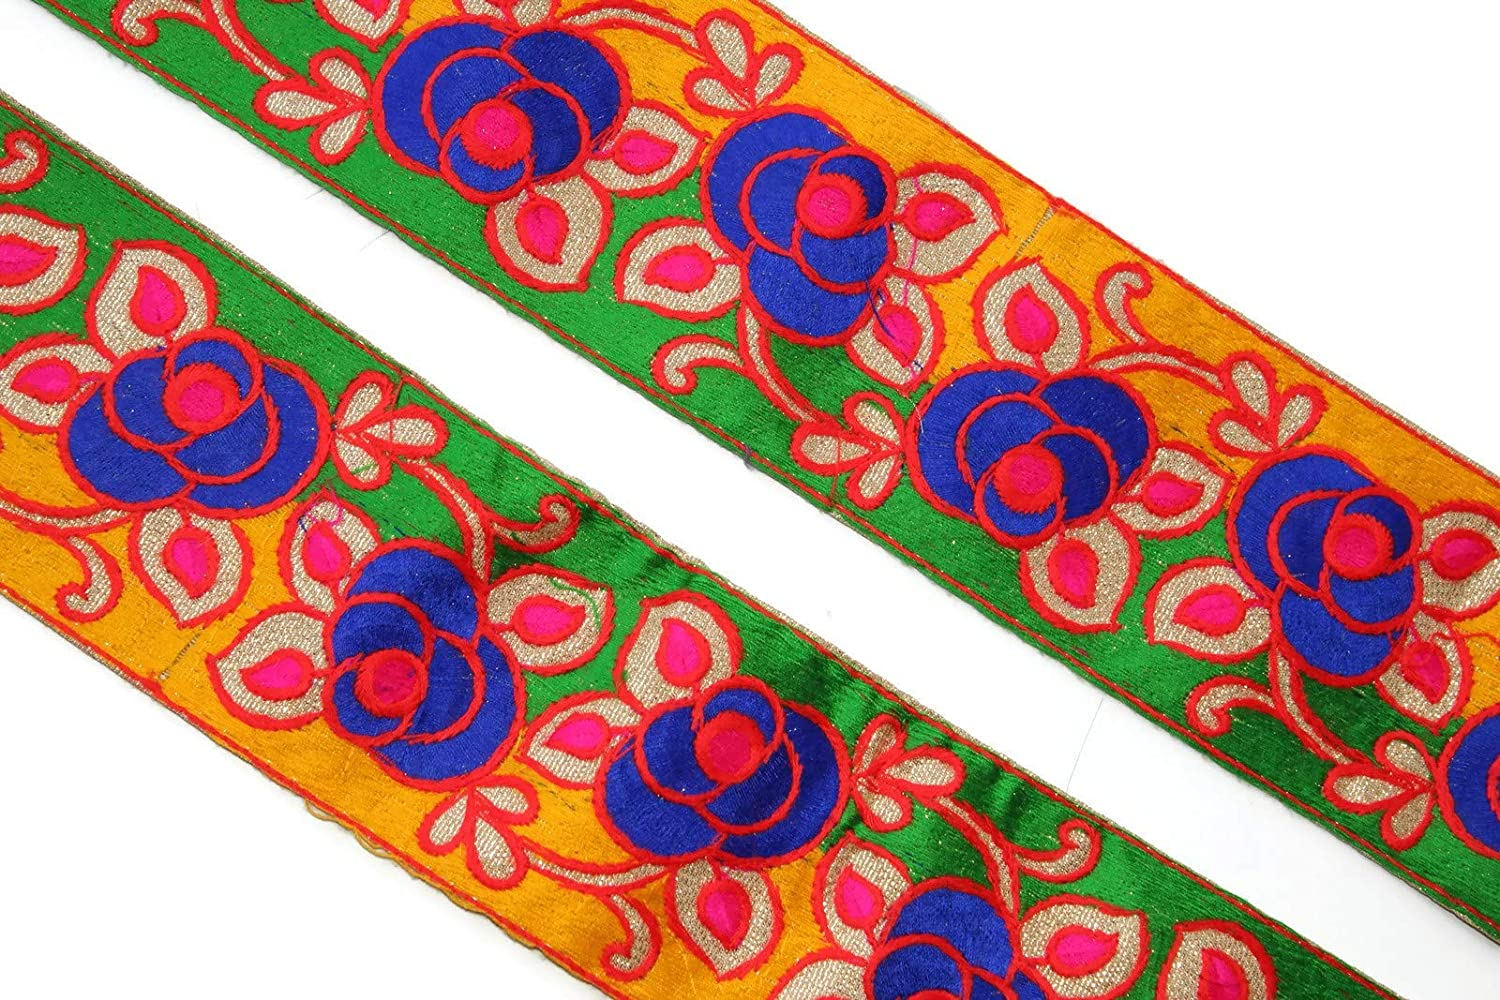 Purple Trim Sari Border Floral Embroidered Fabric Trim 8.8 Cm Wide By The Yard